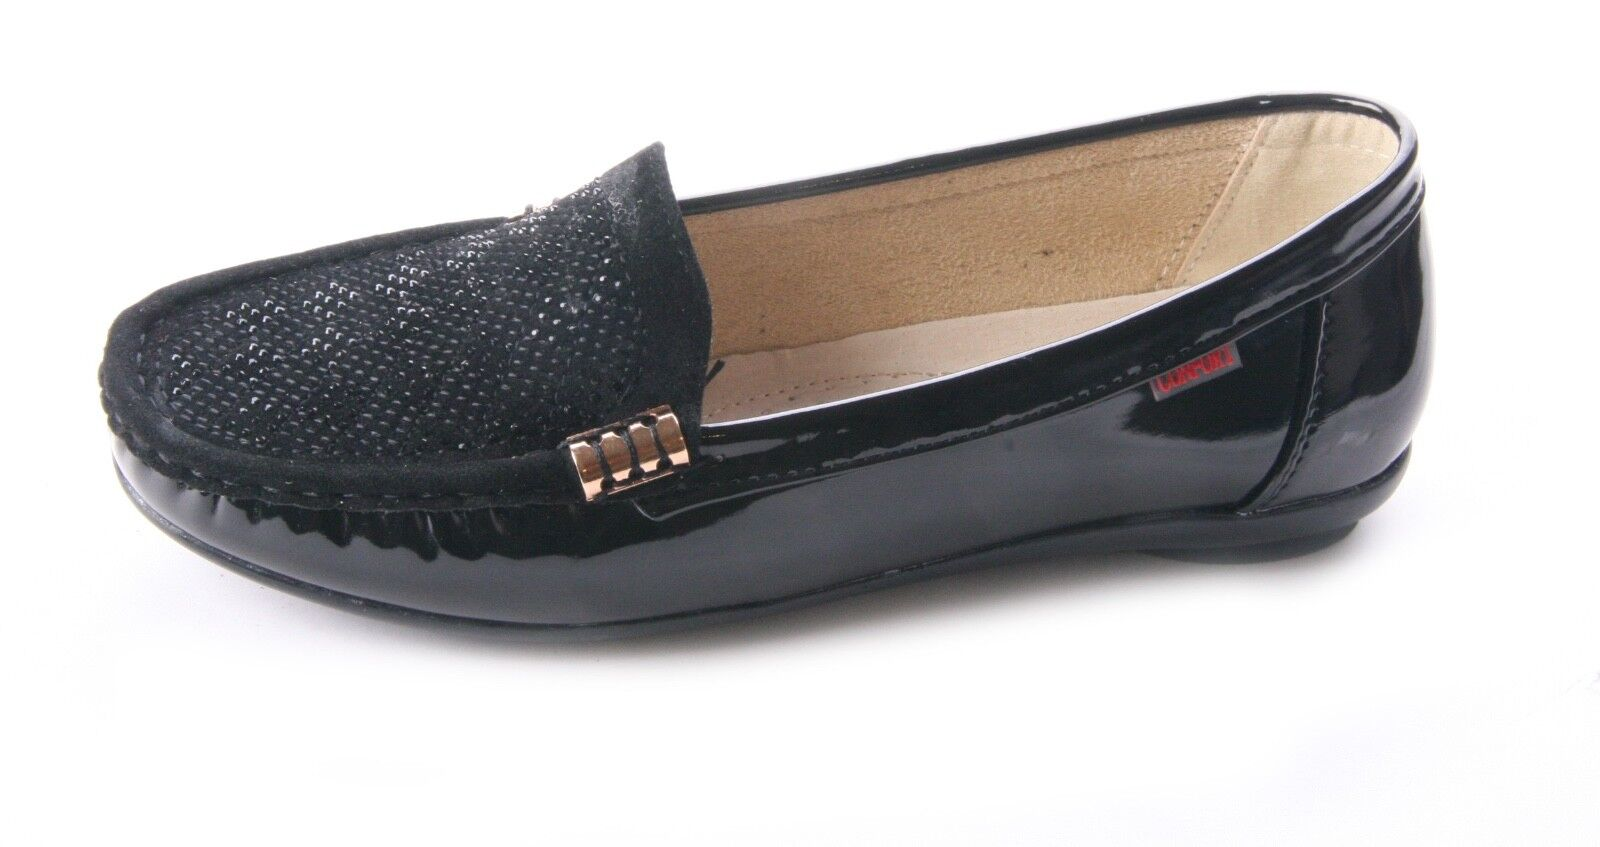 WOMENS LADIES COMFORT LOAFERS WITH DIAMOND TRIM WORK SECRETARY SHOES SIZE 3 -8